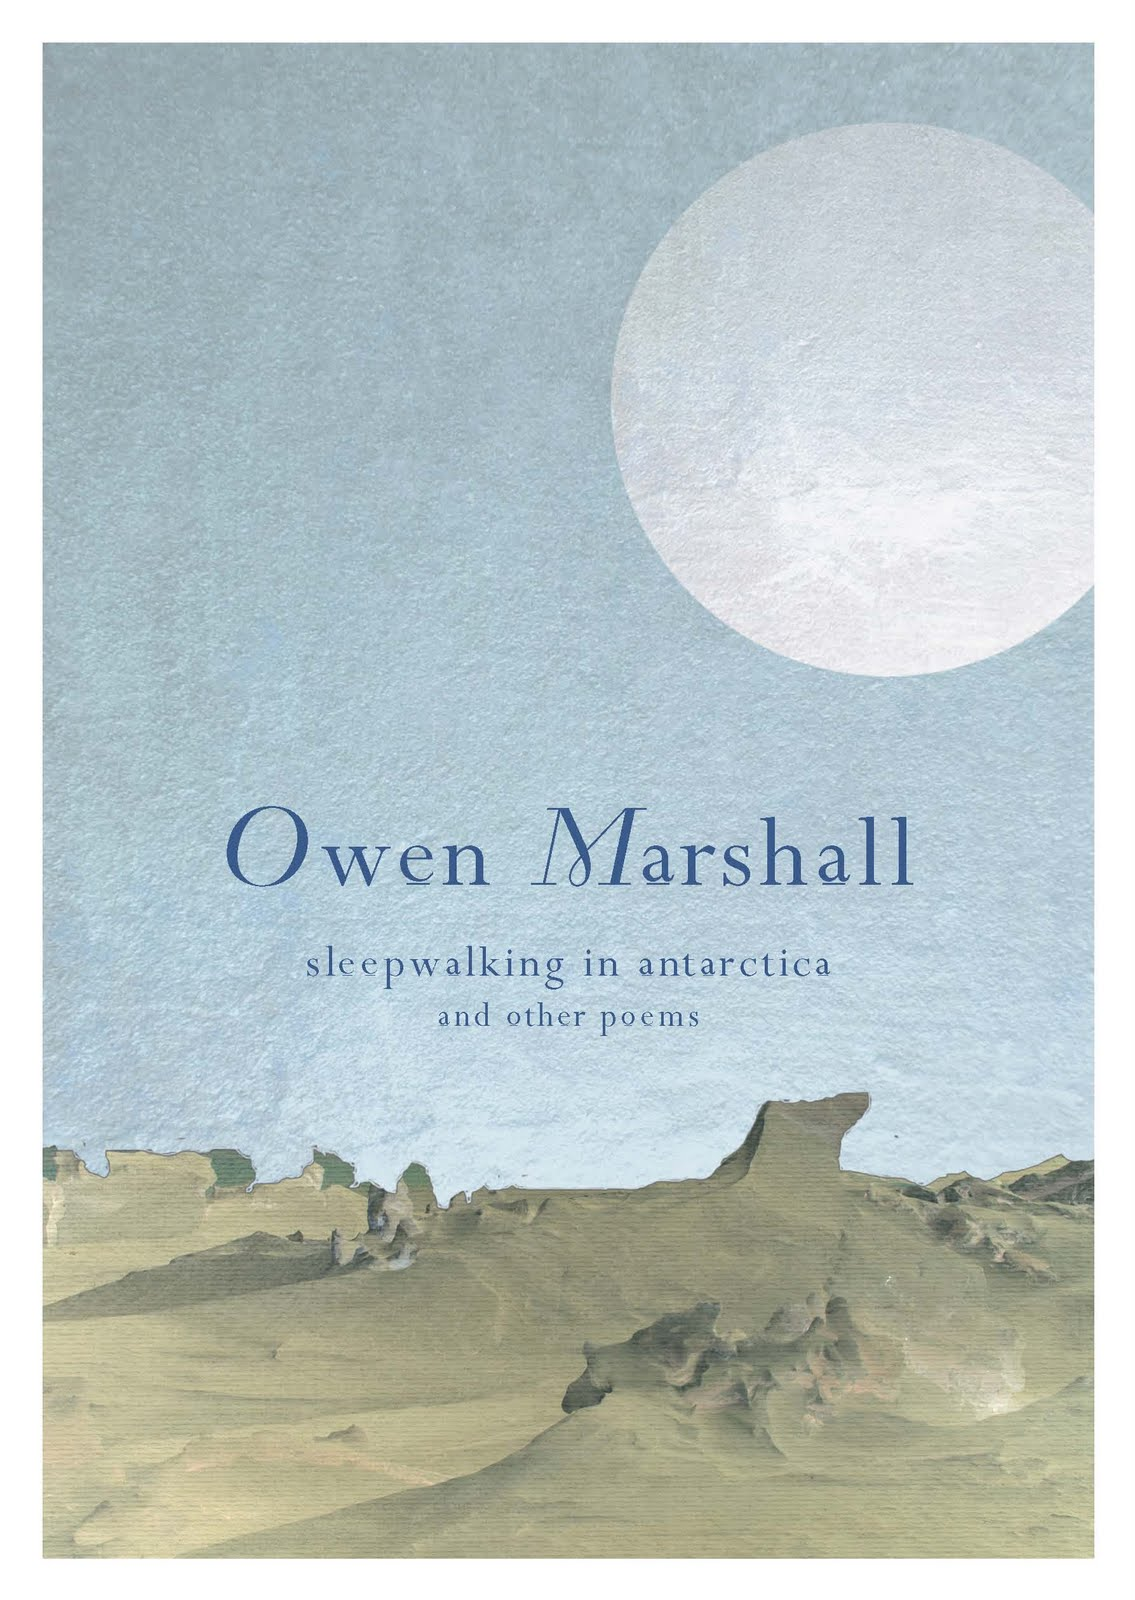 Owen Marshall is best known of course for his superb short stories, ...